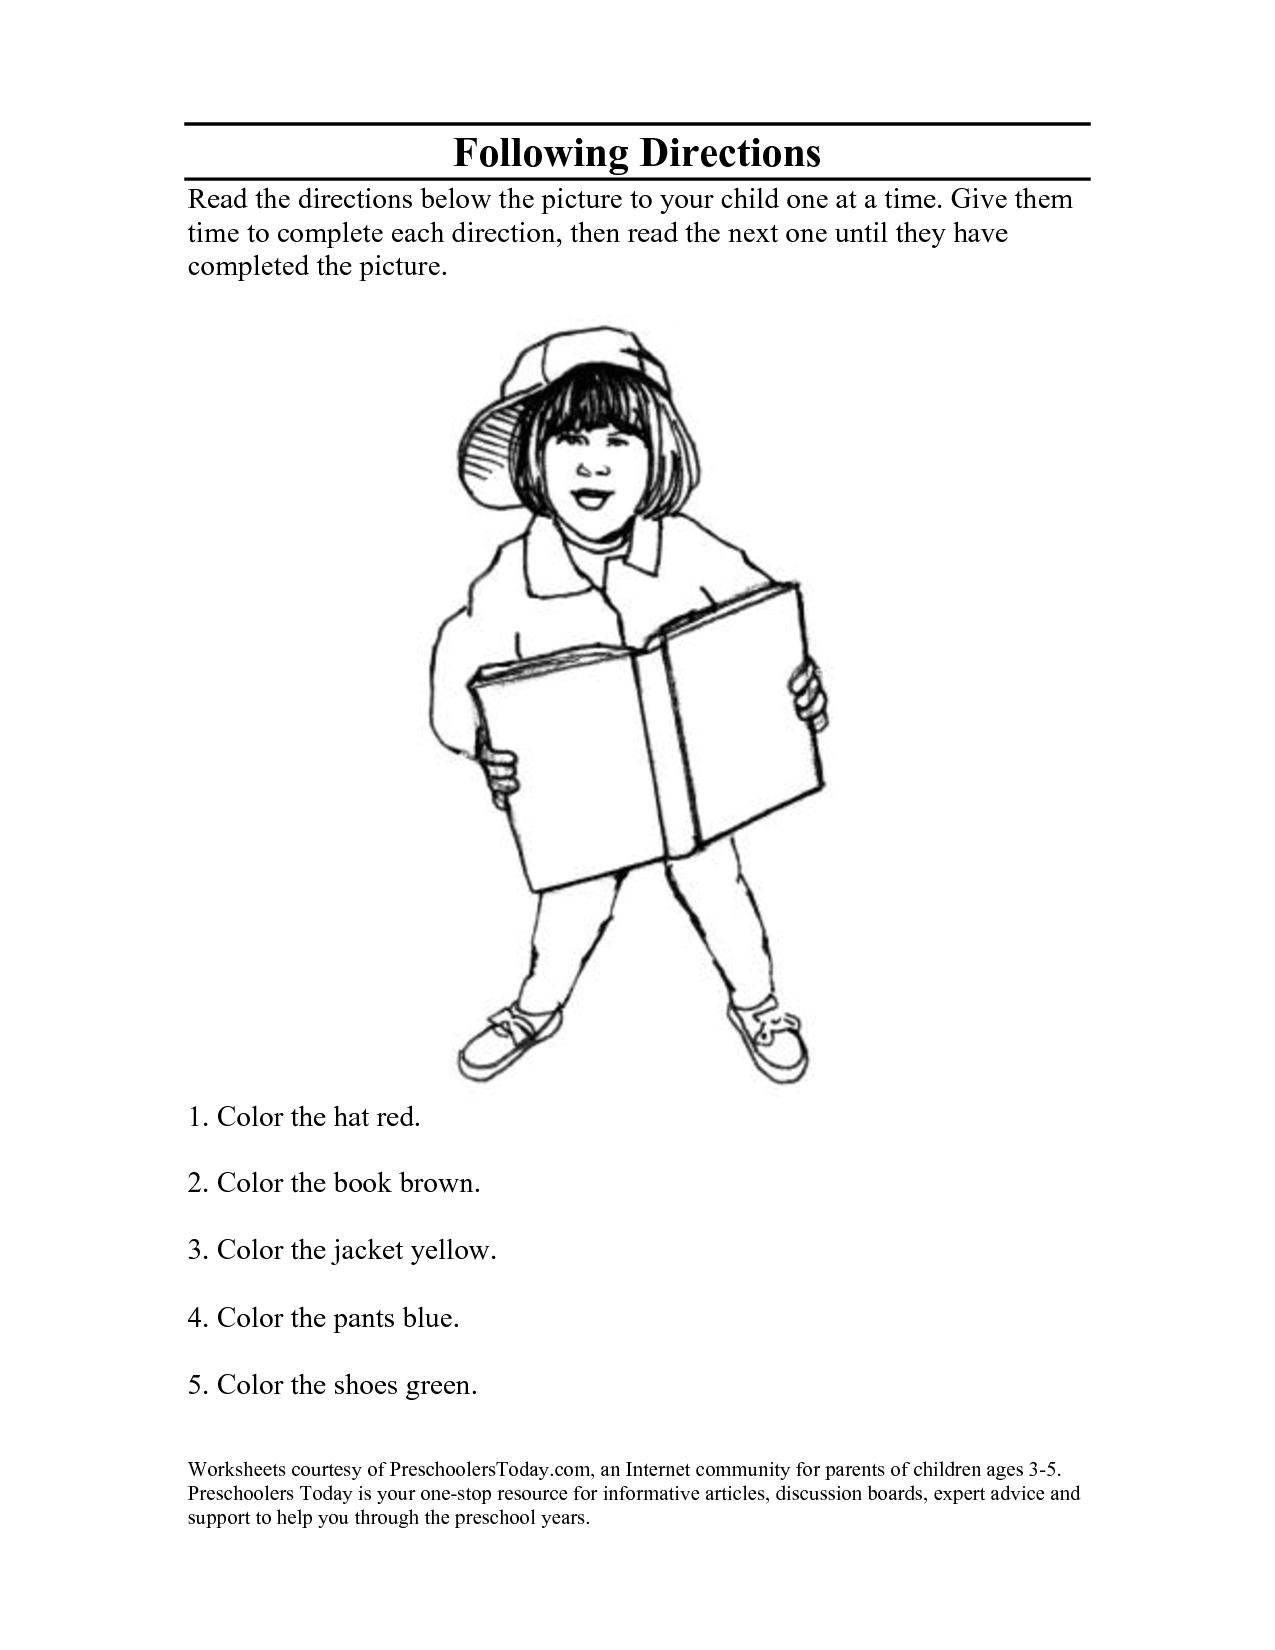 Following Directions Worksheets Coloring Pages